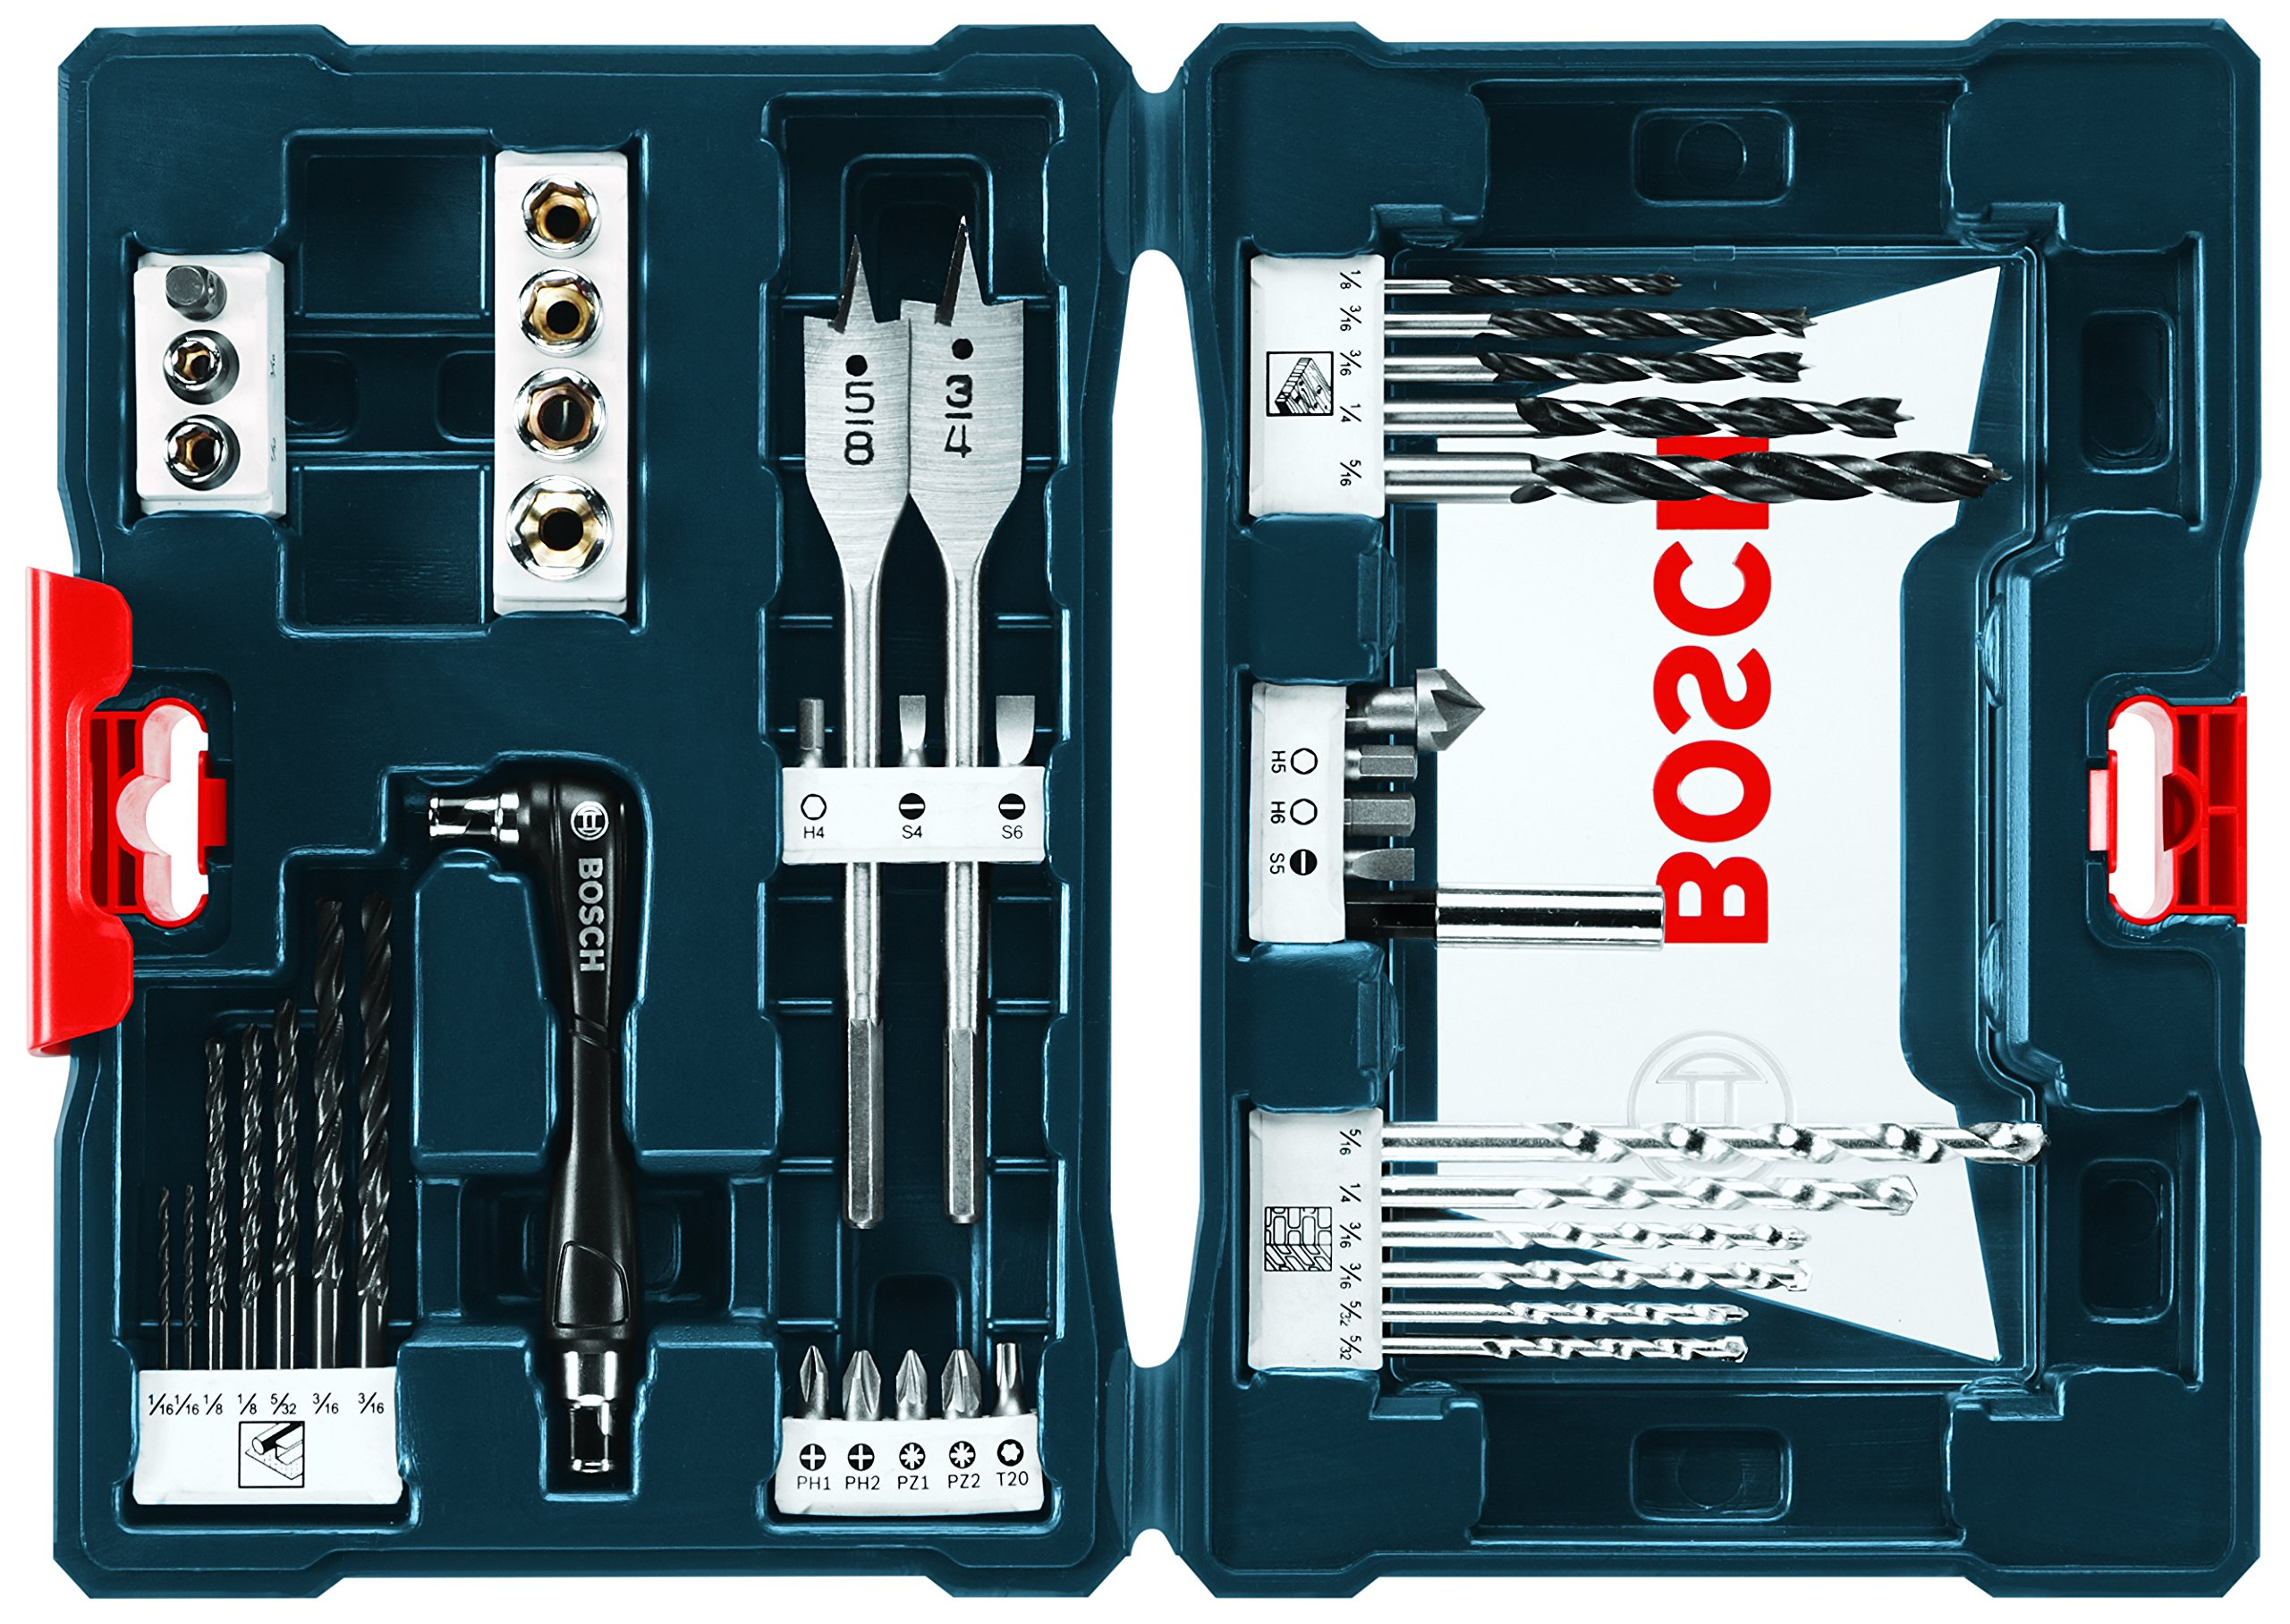 Bosch MS4041 41-Piece Drill and Drive Bit Set by Bosch